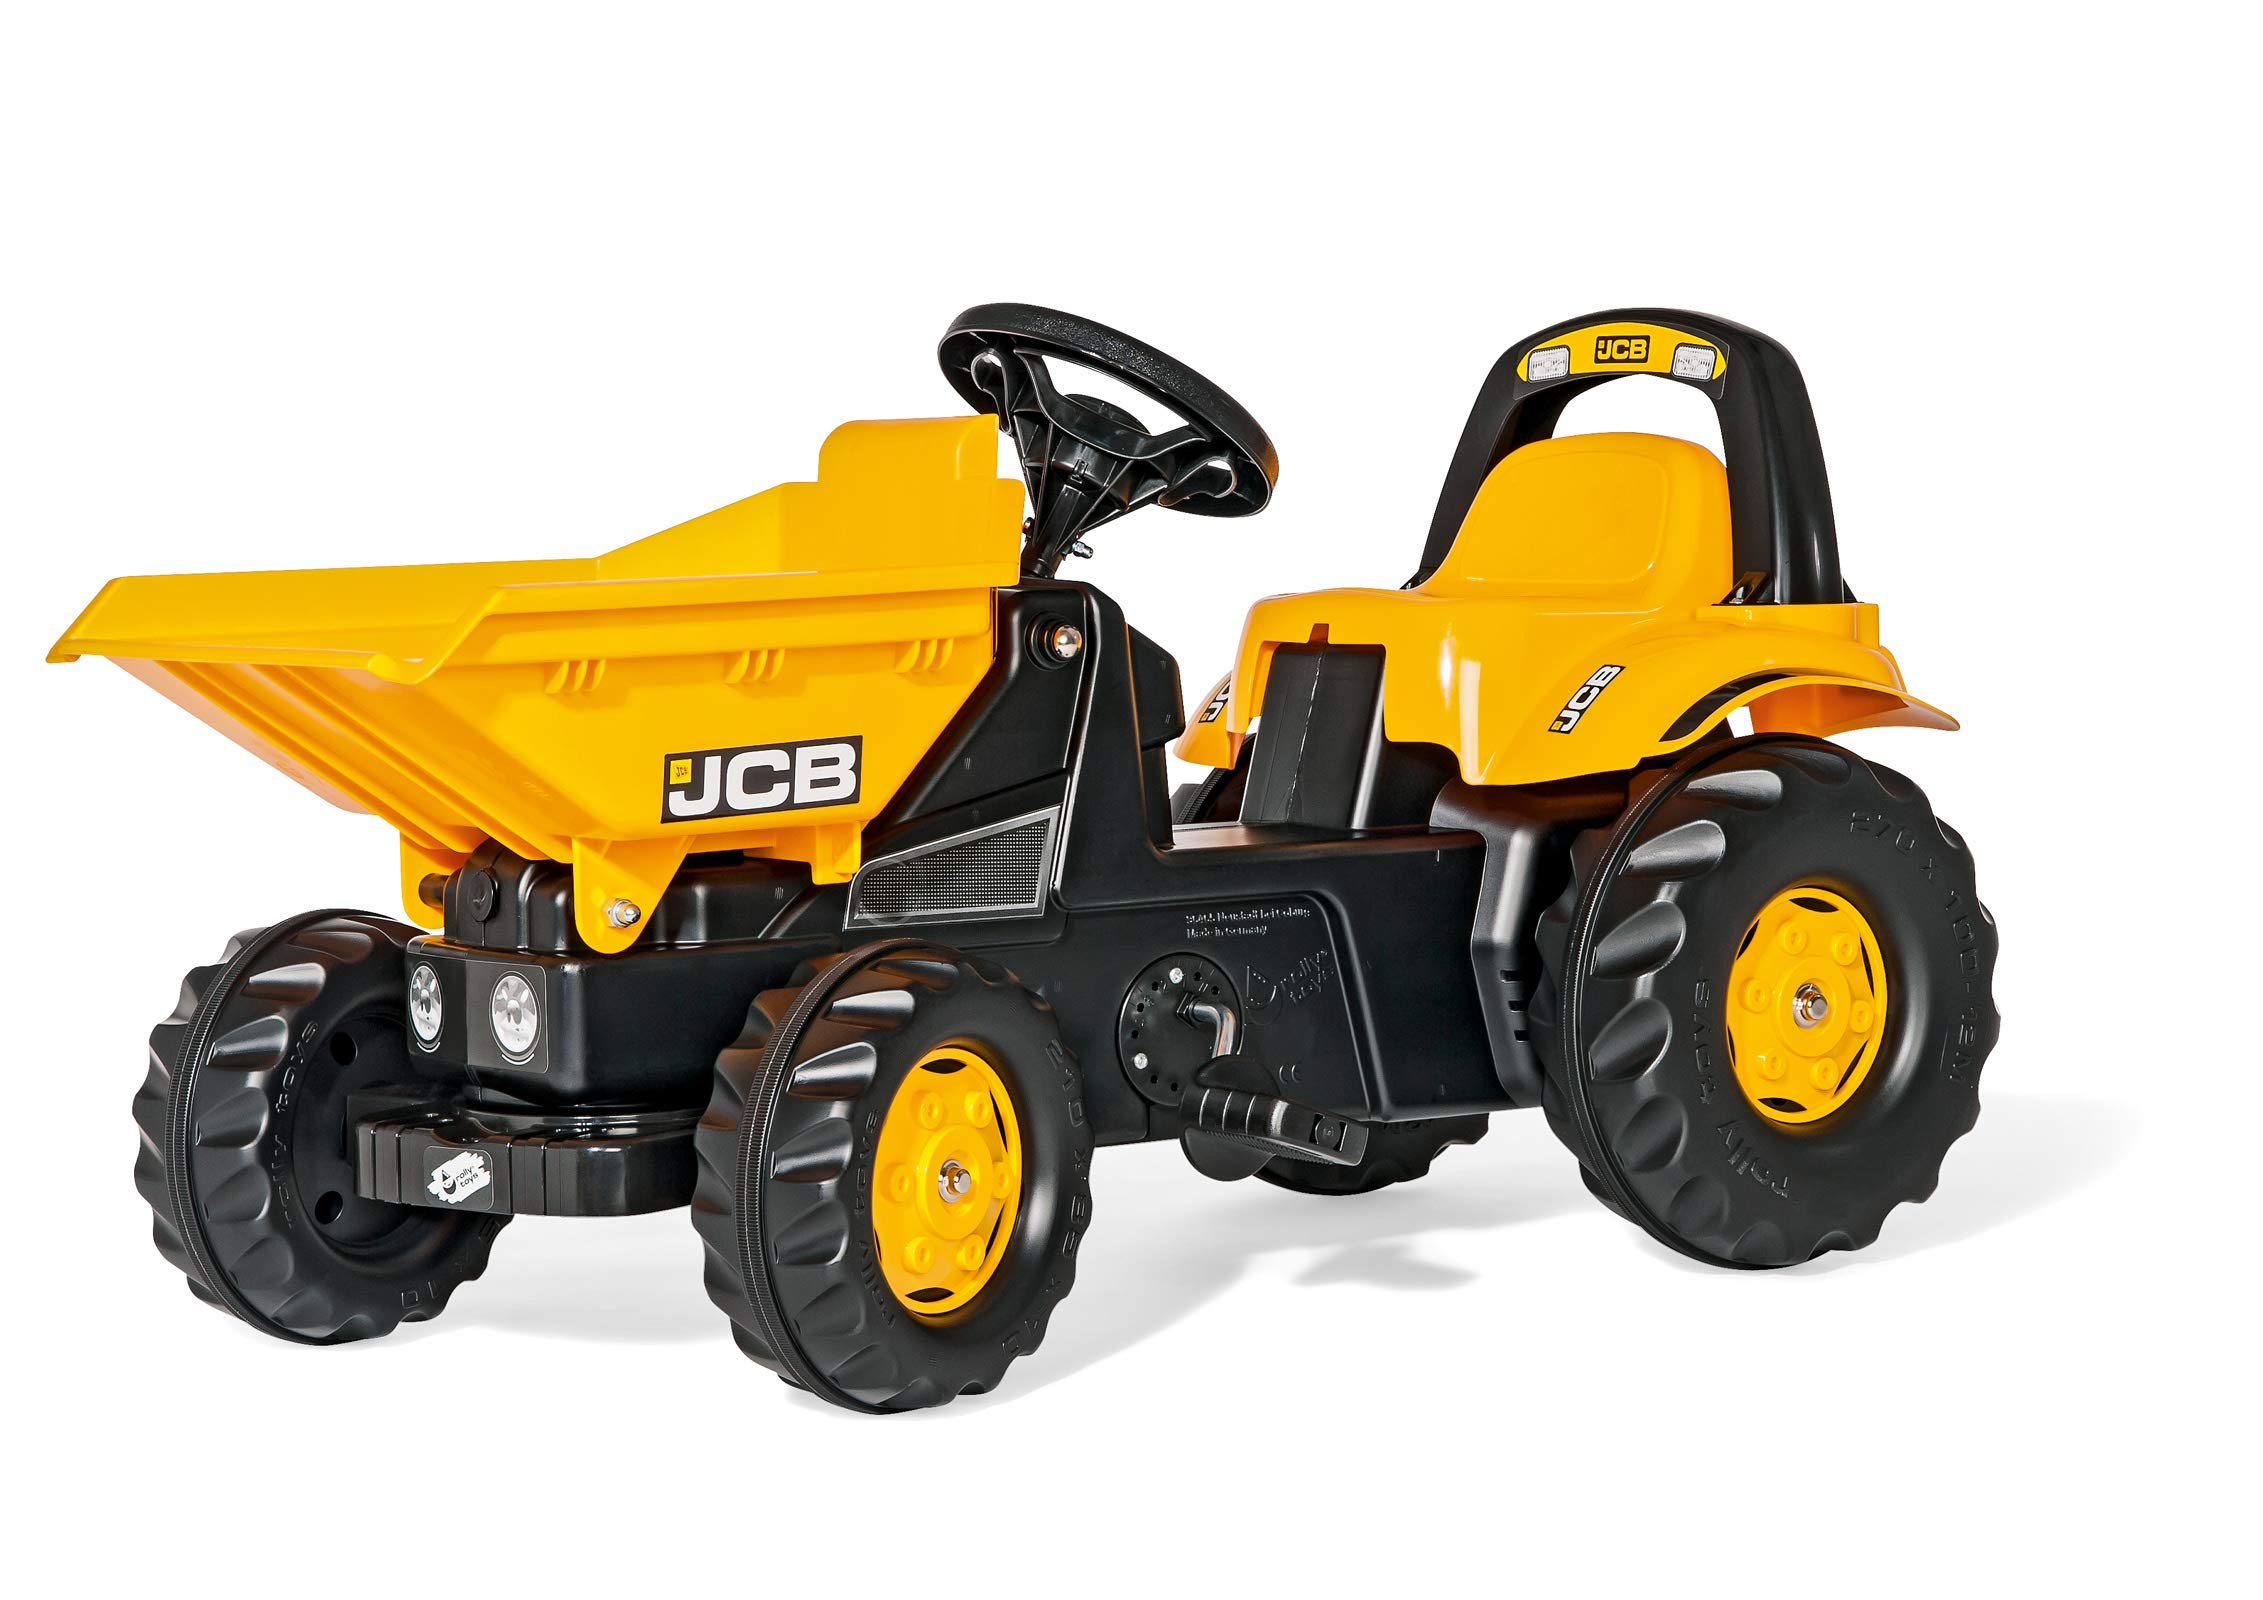 Rolly Toys JCB Dumper Kid Tractor, Yellow